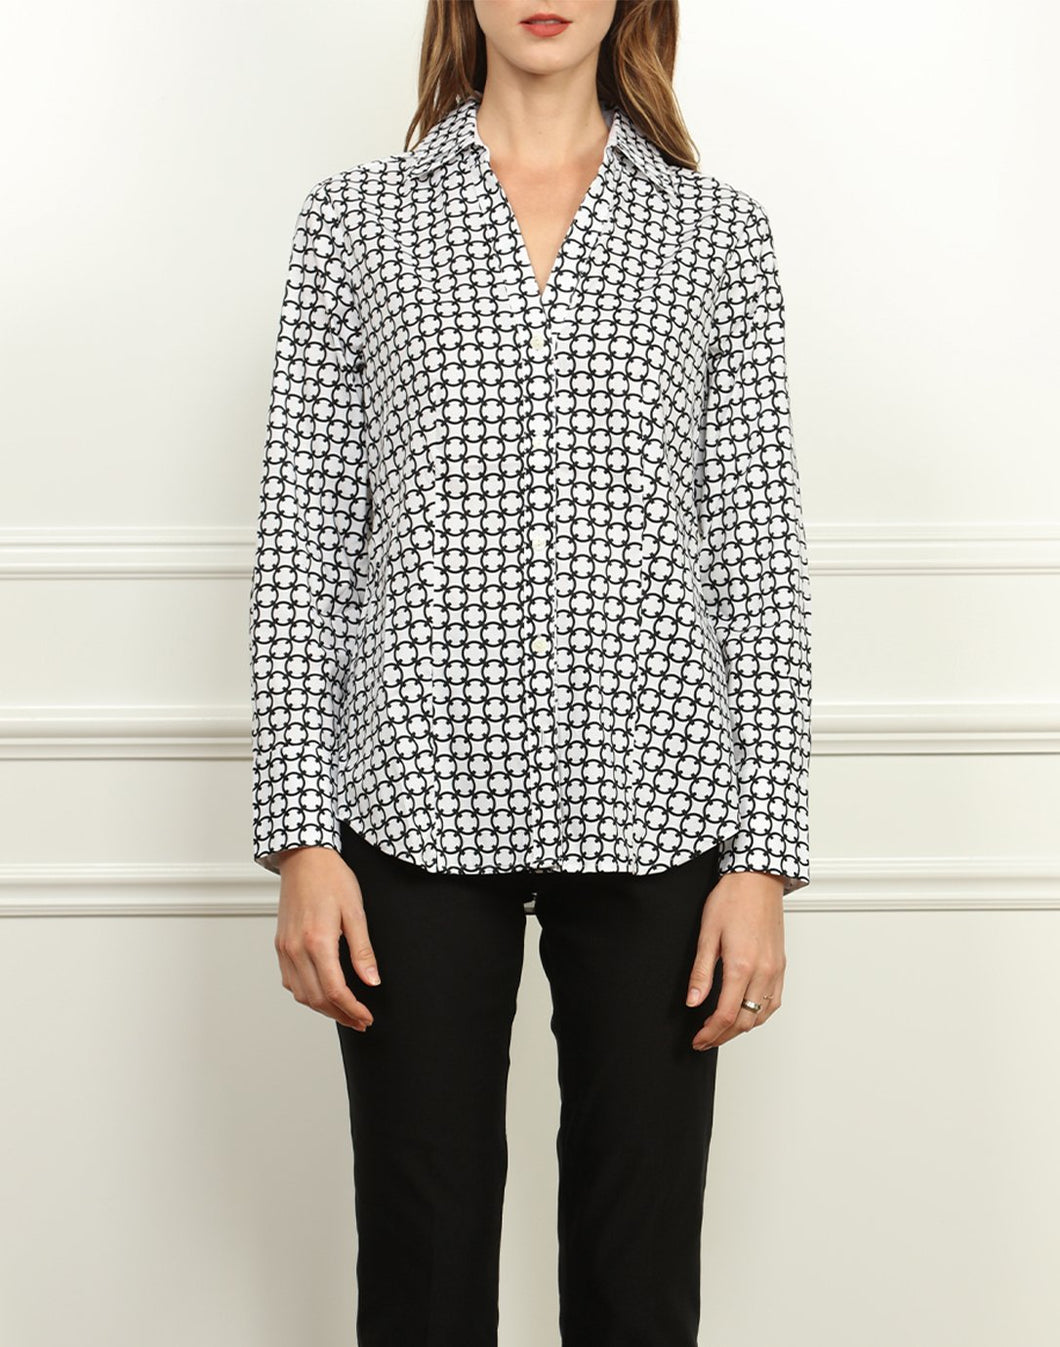 Kelly Double Collar Shirt In Black and White Chainlink Print